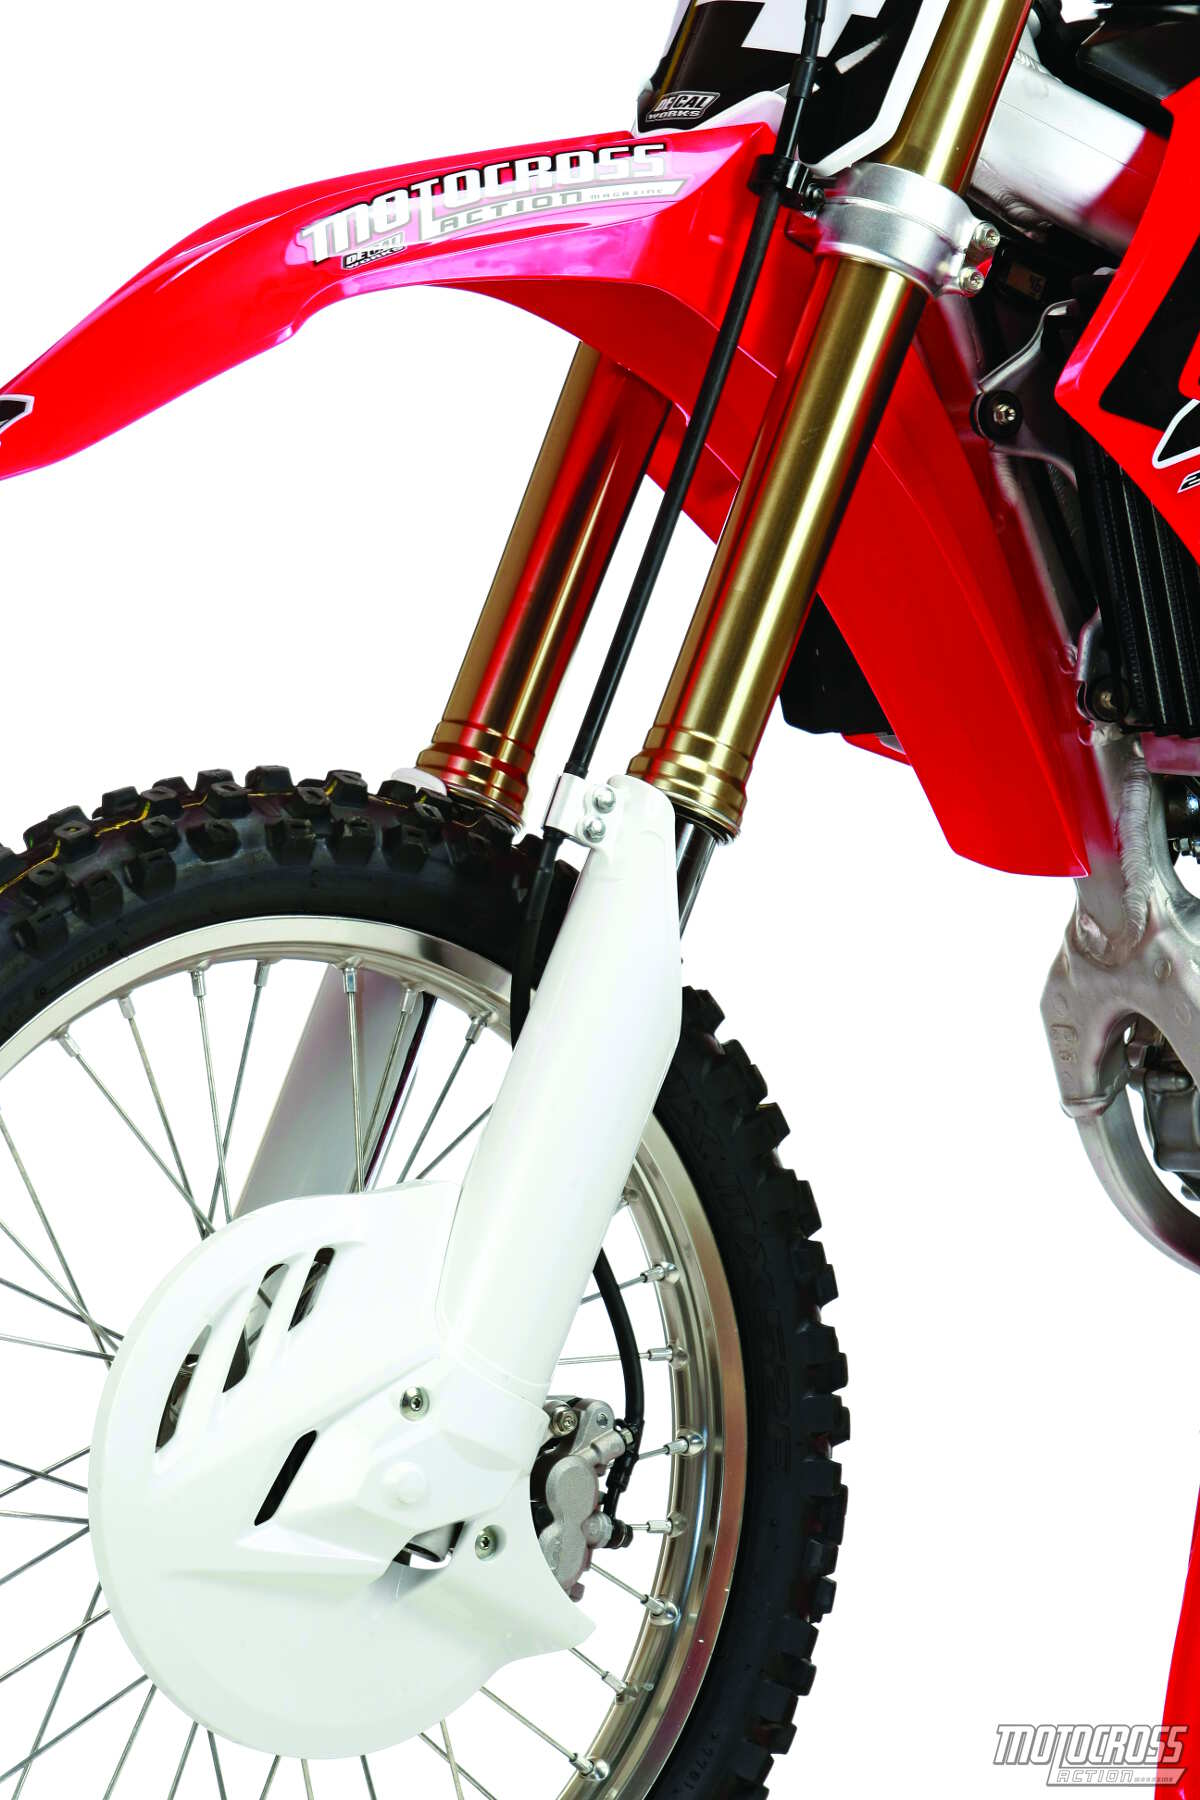 Mxas 2015 Honda Crf250 Motocross Test Mellow Meister 2014 Kawasaki Kx250f Wiring Diagram Airness Showas Sff Tac Forks Are An Improvement Over The Old Although